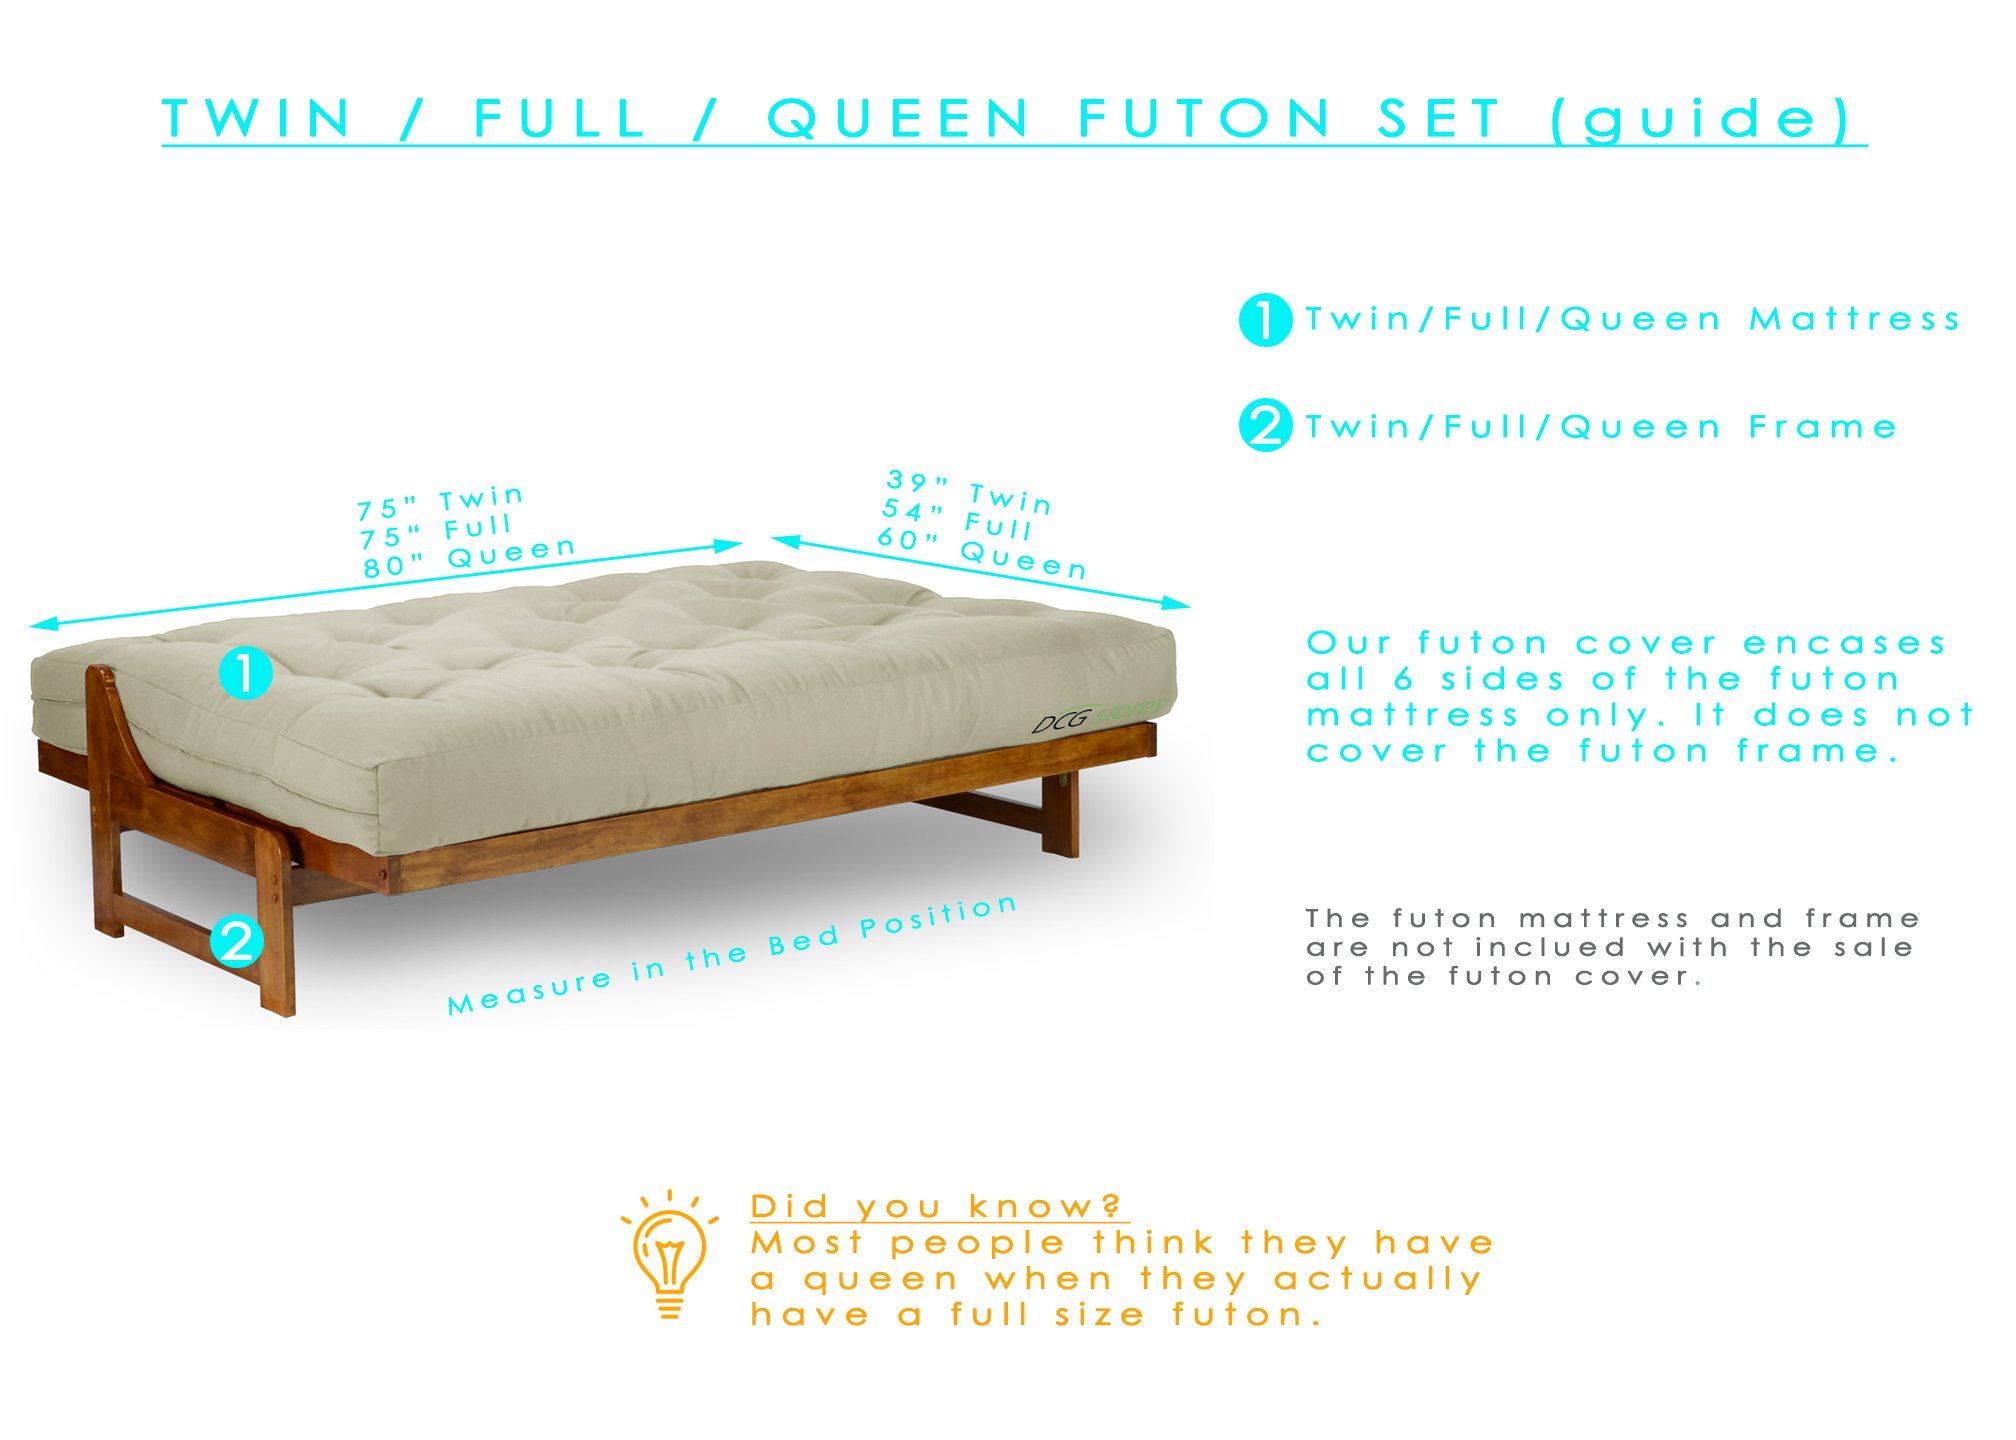 Cognac Queen Futon Mattress Cover (60-inch x 80-Inch) - Proudly Made in USA by Nirvana Futons (Image #2)